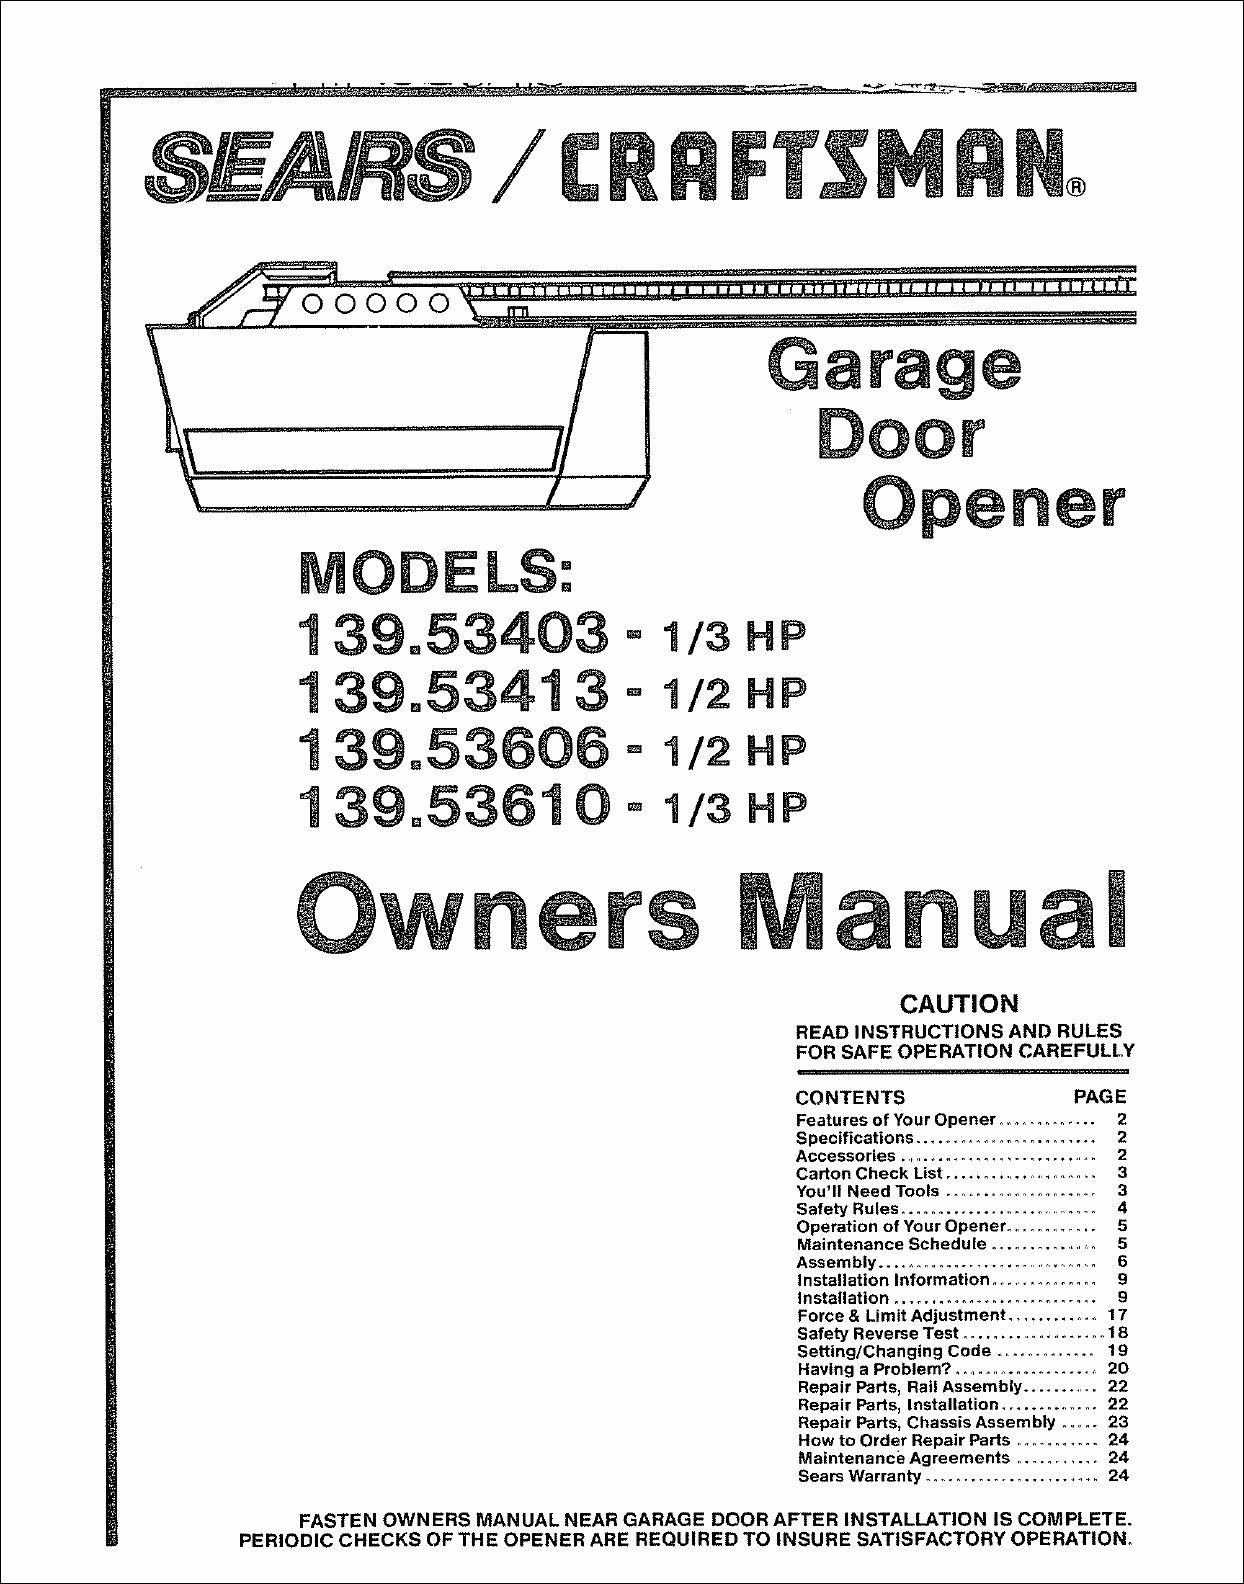 unique wiring diagram garage door motor diagram diagramsample diagramtemplate wiringdiagram diagramchart worksheet worksheettemplate [ 1244 x 1584 Pixel ]